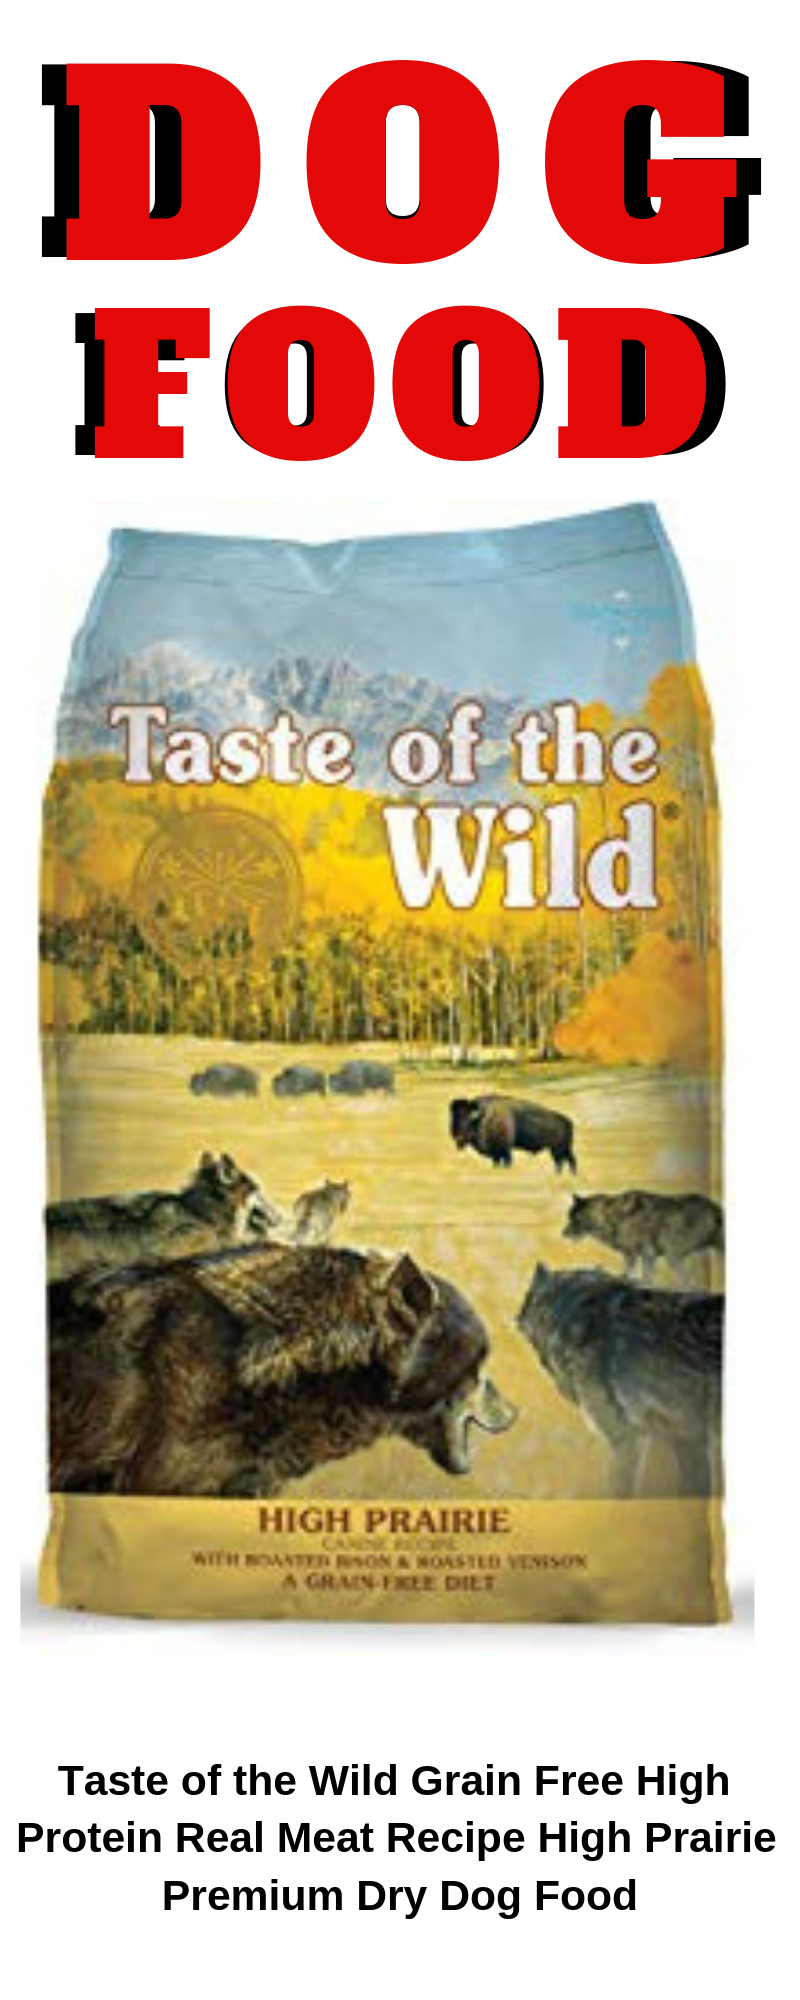 Taste Of The Wild Grain Free High Protein Real Meat Recipe High